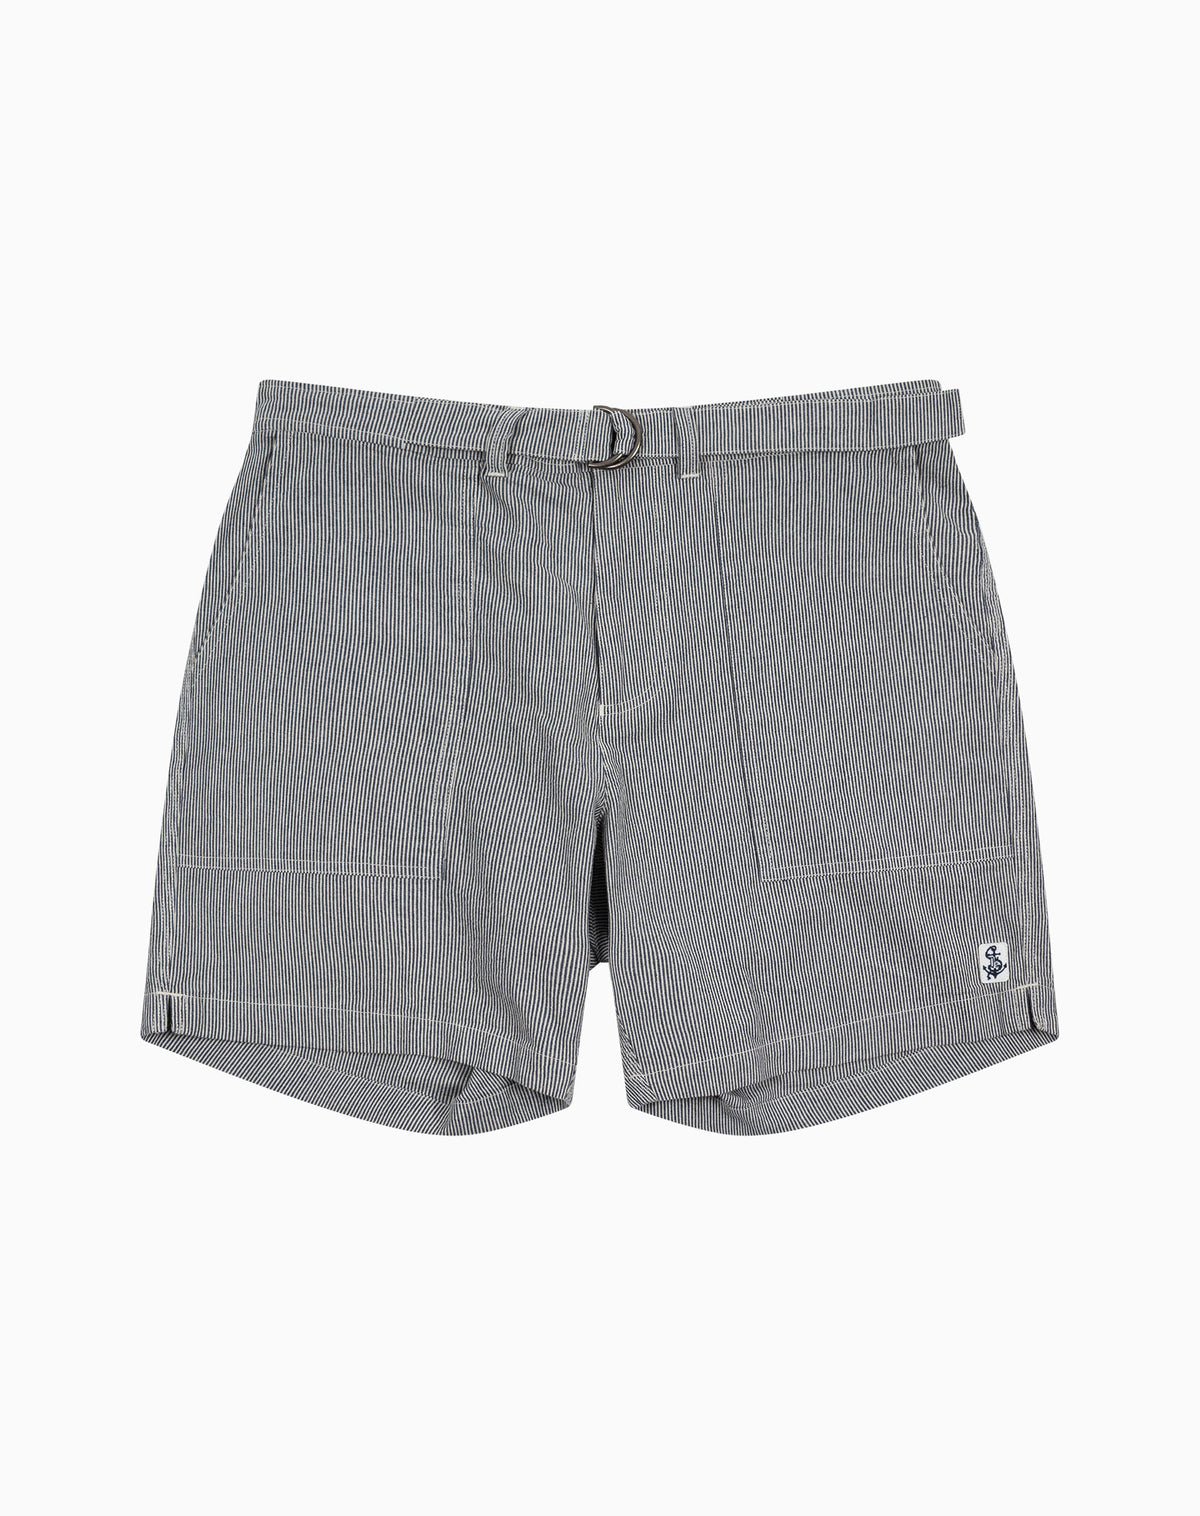 Utility Short in Railroad Stripe